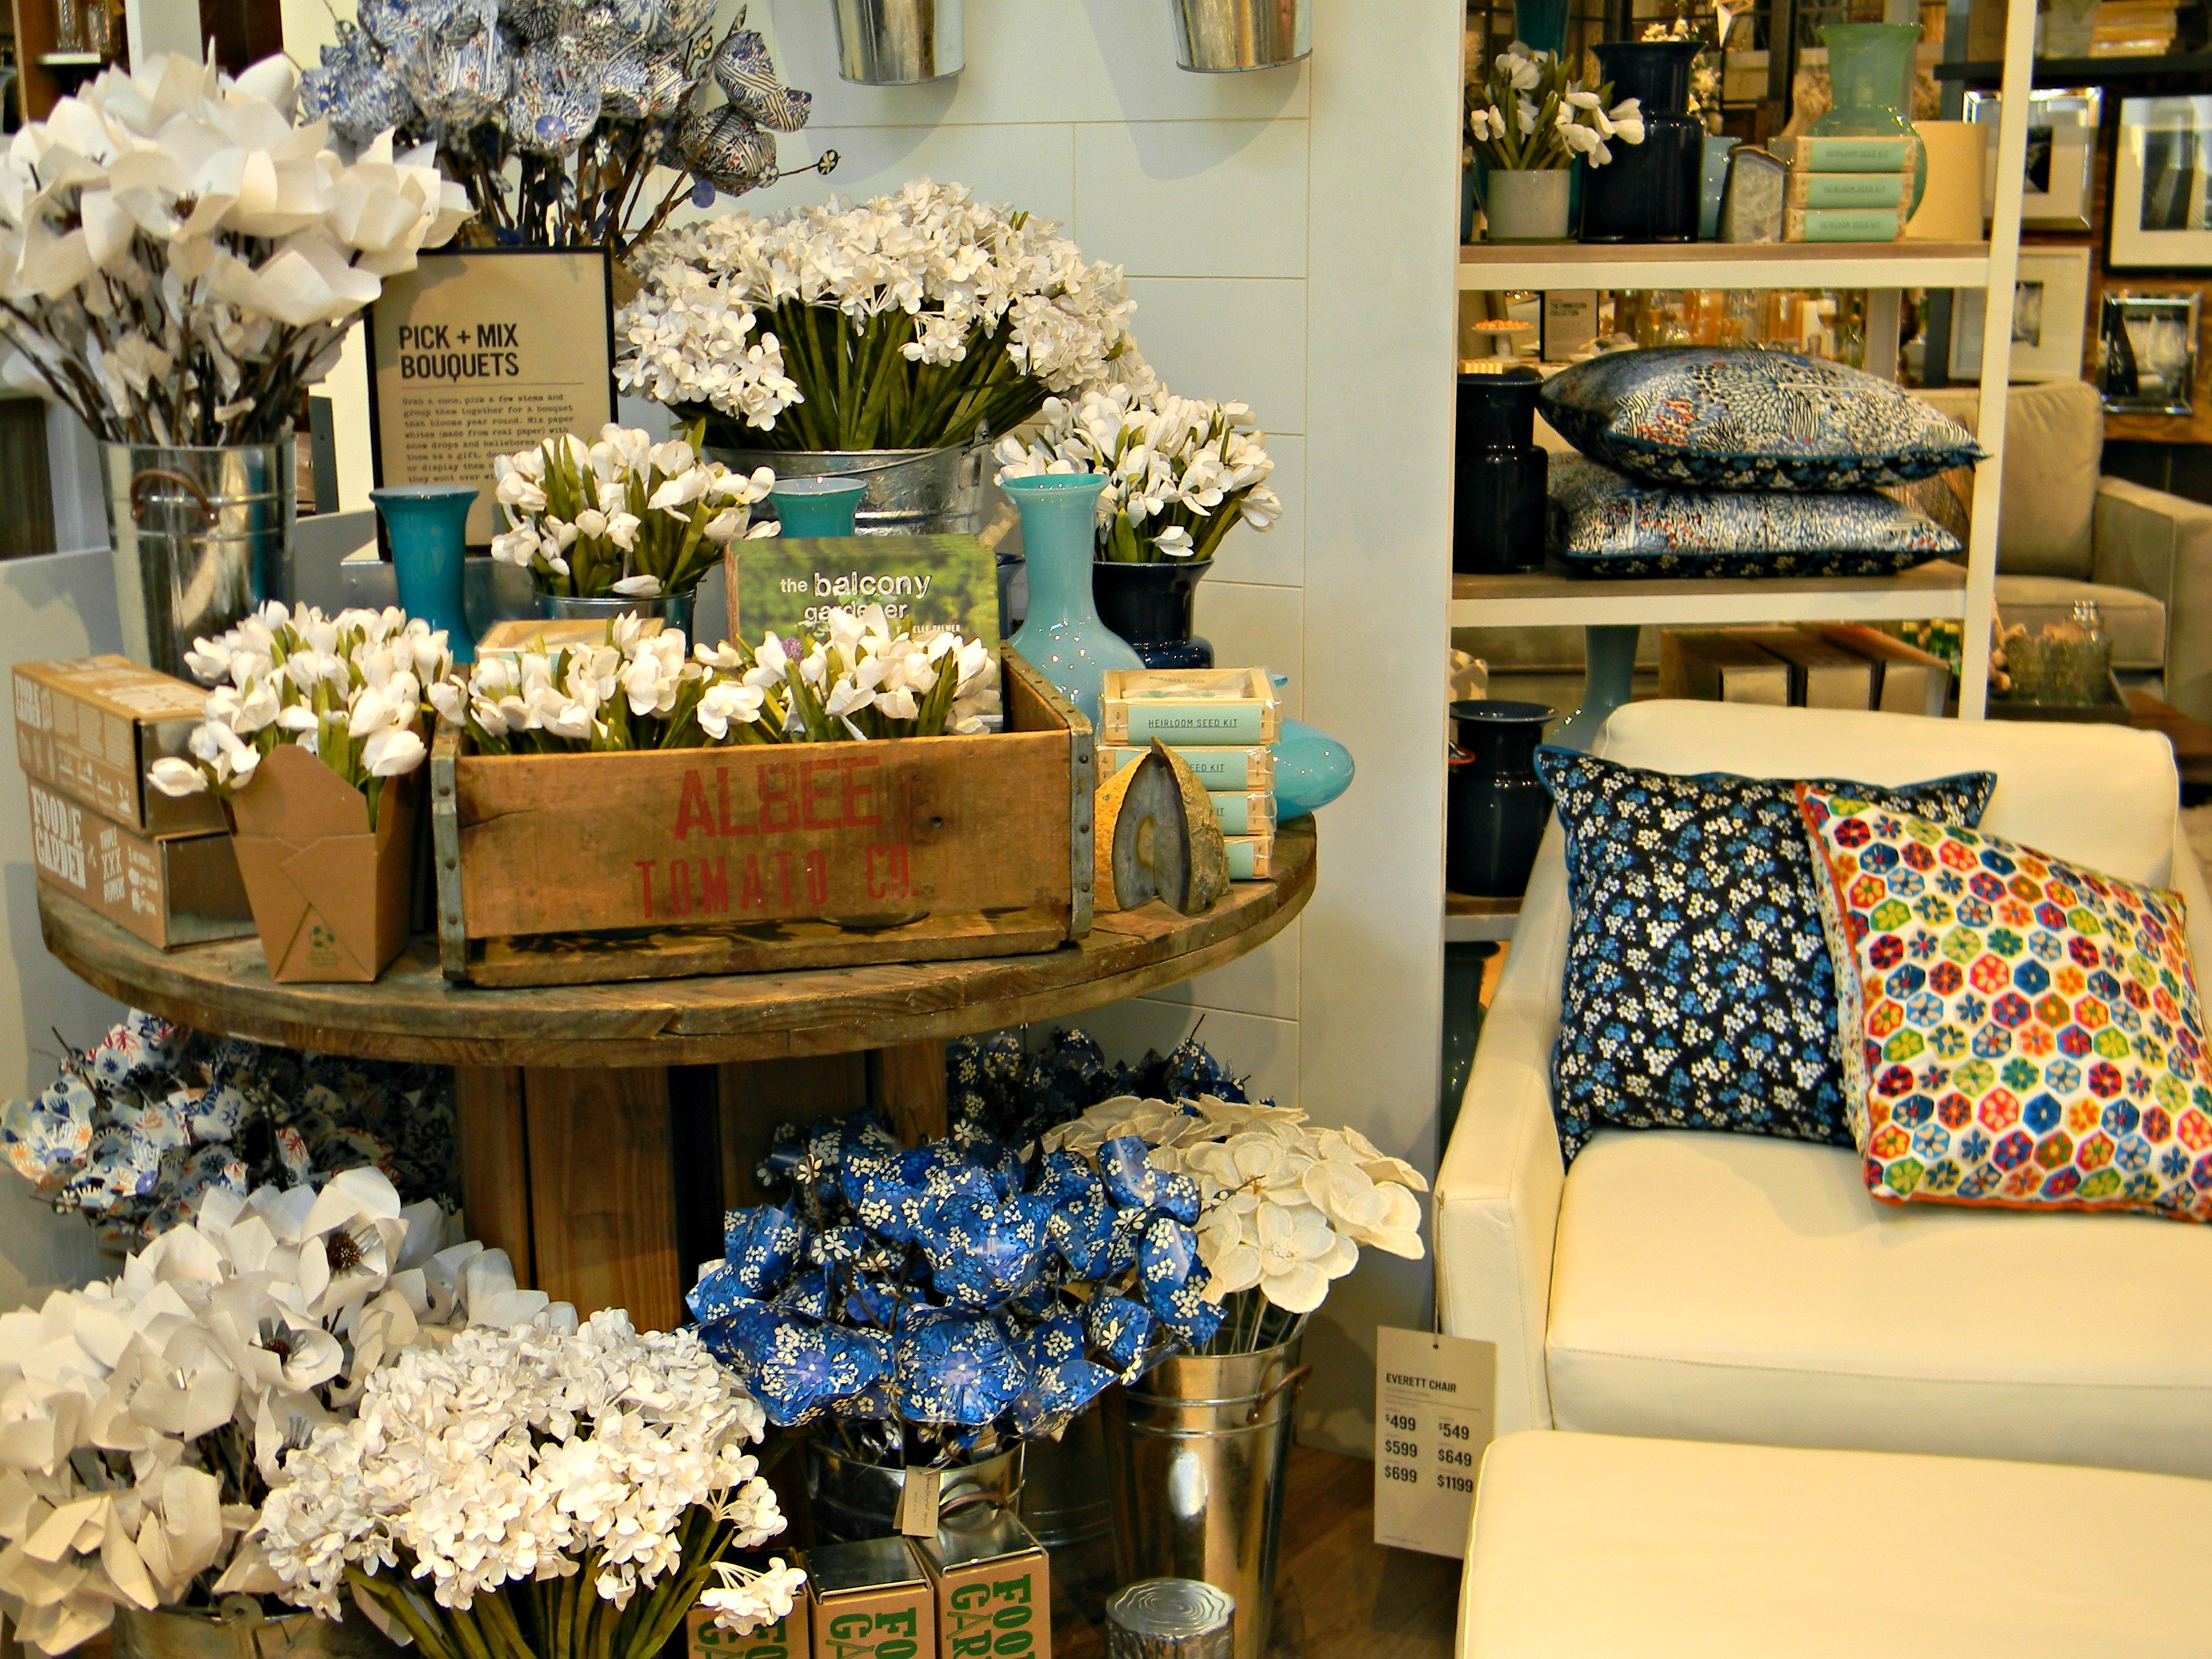 West elm at city creek center in salt lake city organize and these izmirmasajfo